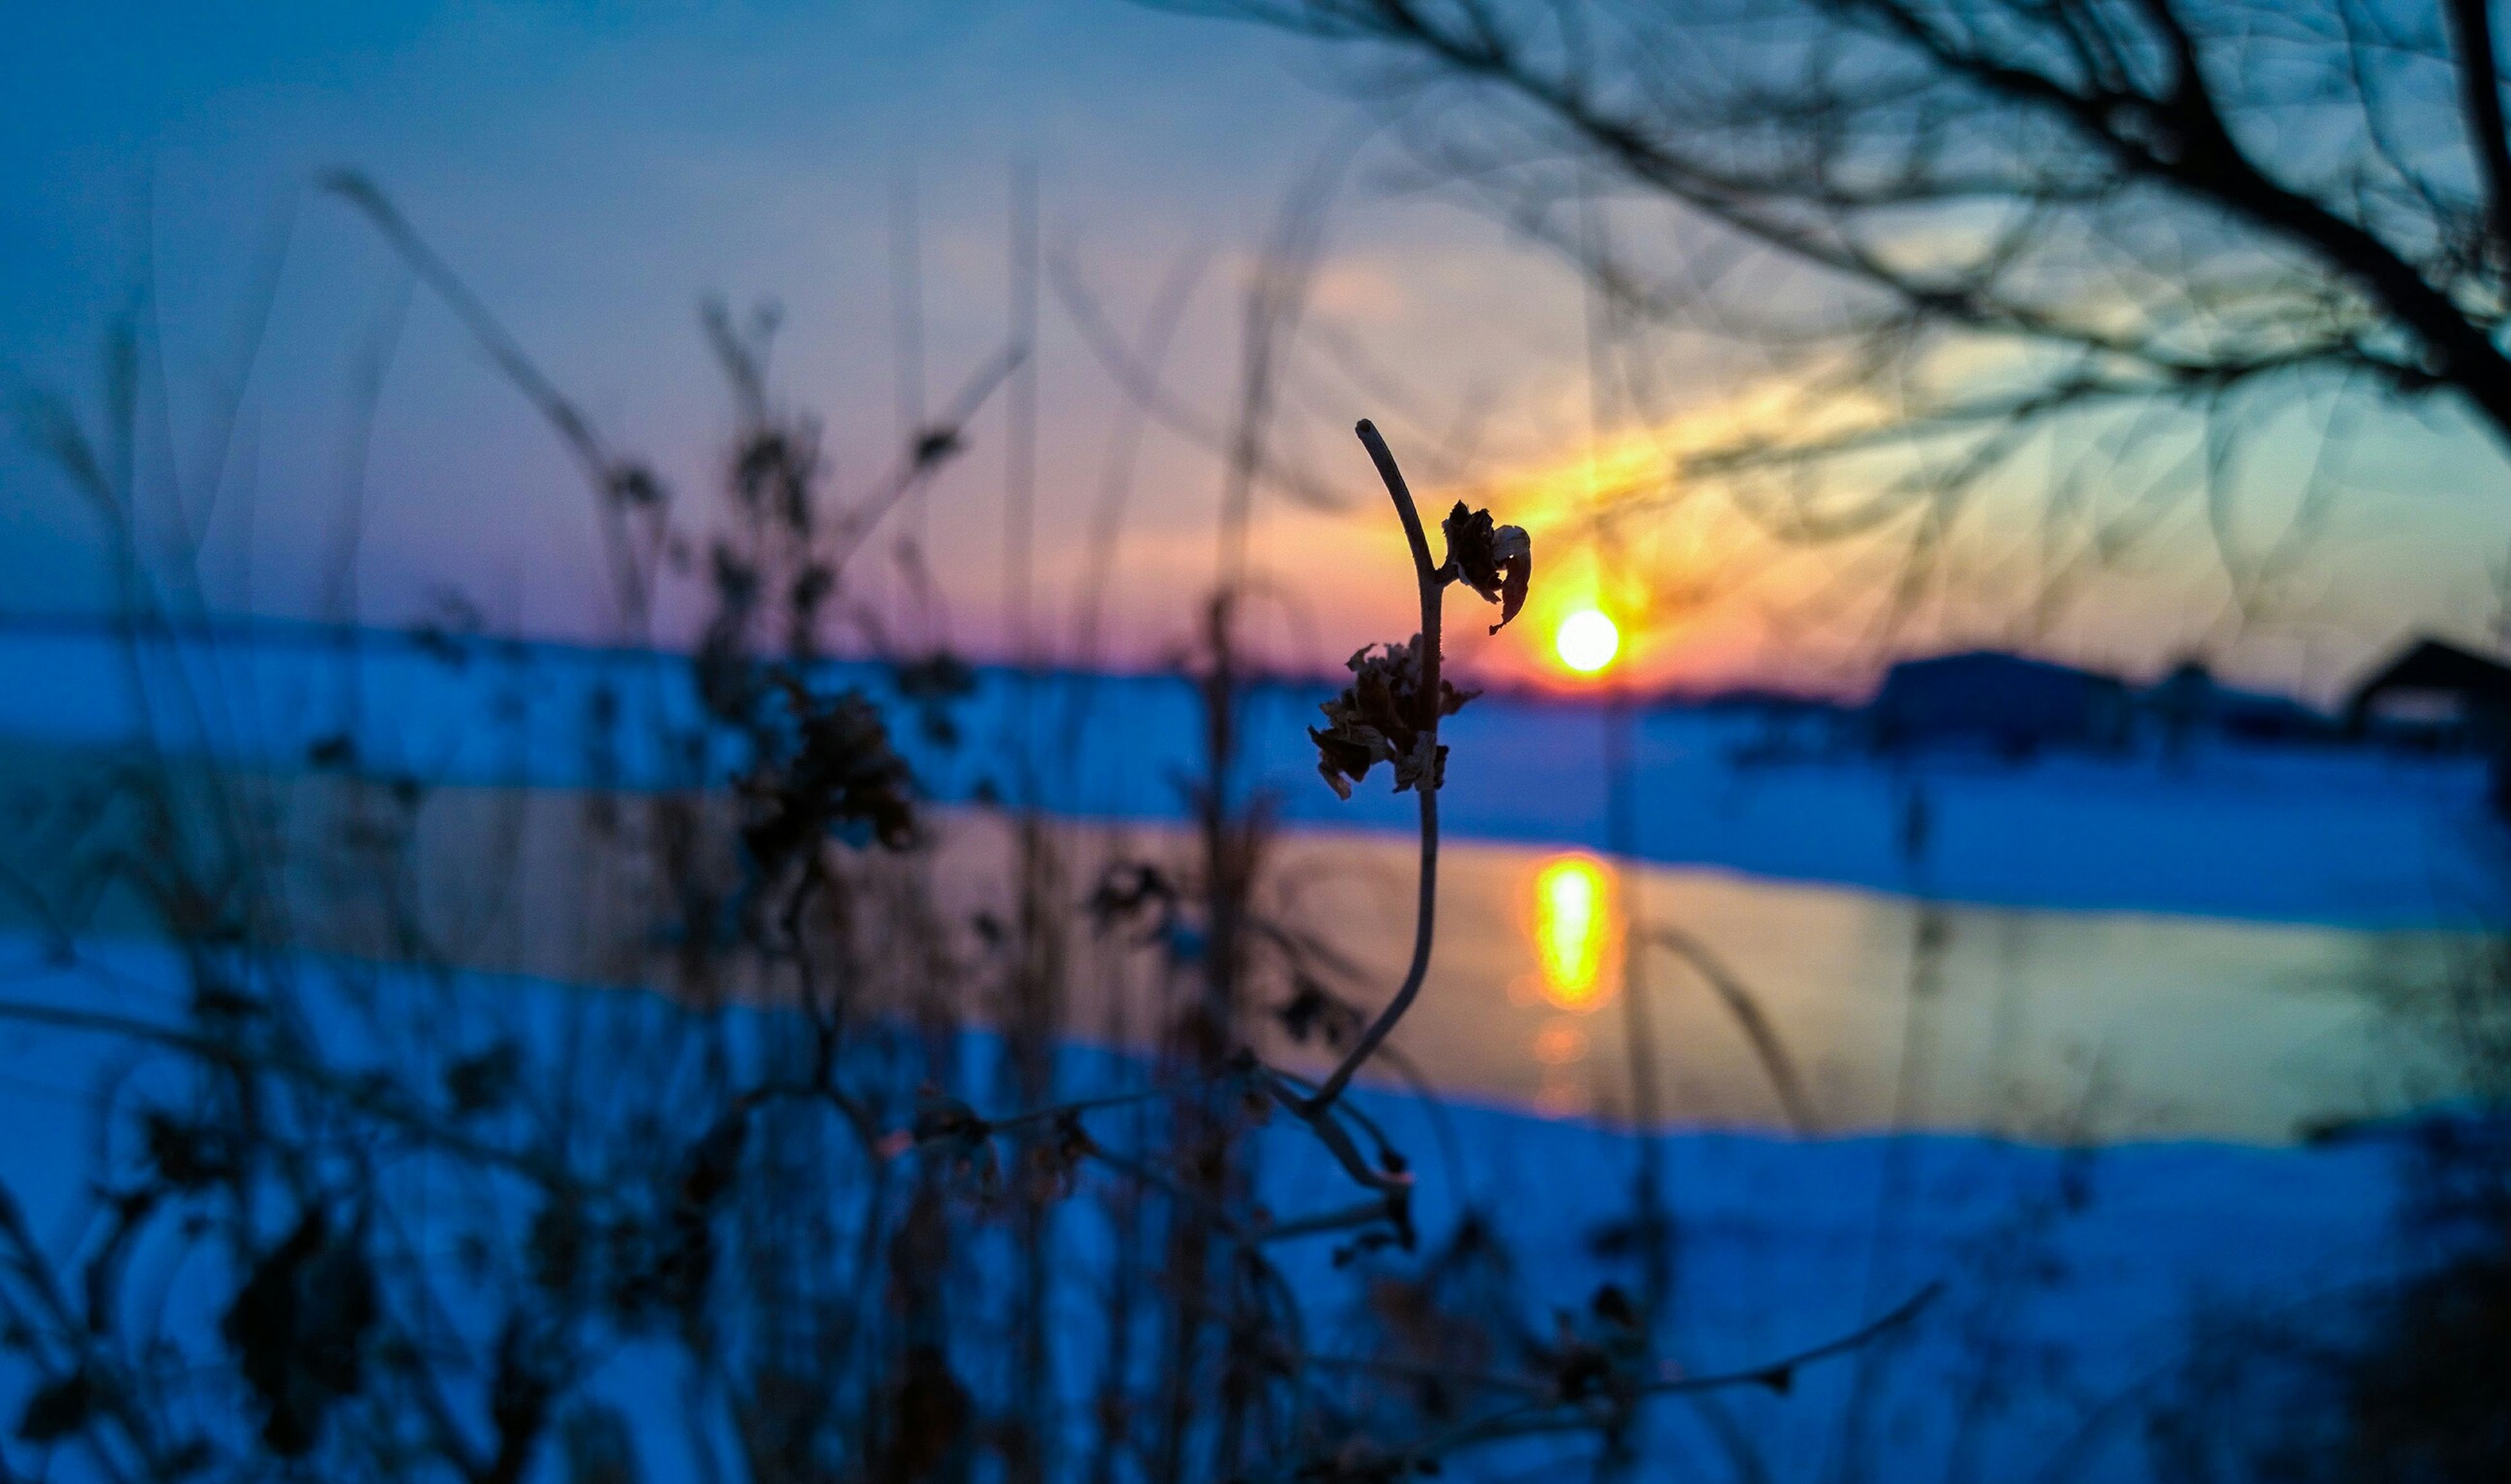 sunset, focus on foreground, silhouette, nature, sky, selective focus, beauty in nature, orange color, plant, tranquility, close-up, sun, dusk, branch, stem, outdoors, tranquil scene, scenics, no people, water